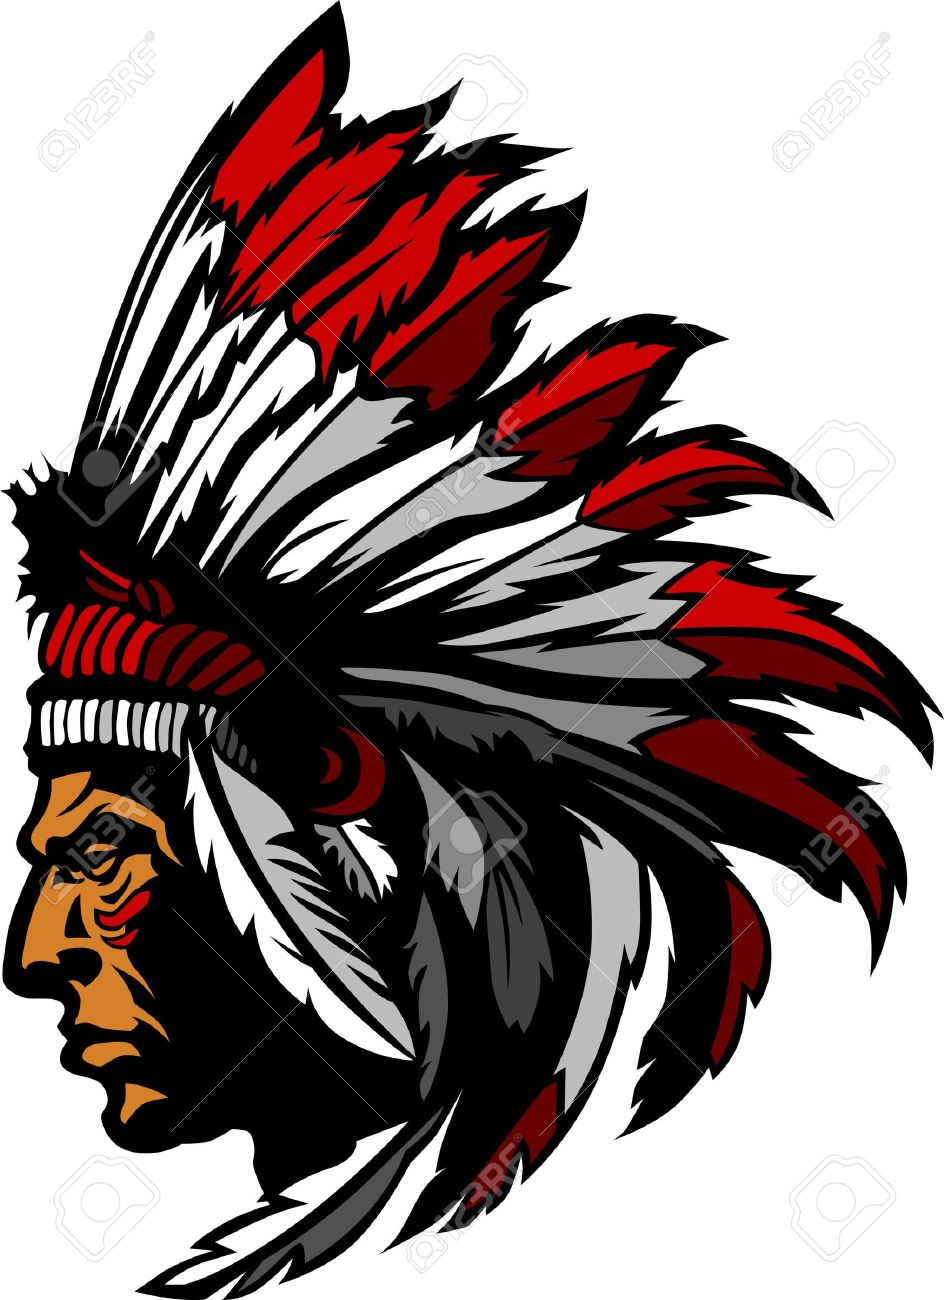 Wonderful Indian Chief Head #4: Indian Chief Mascot Head Graphic Stock Vector - 10311813